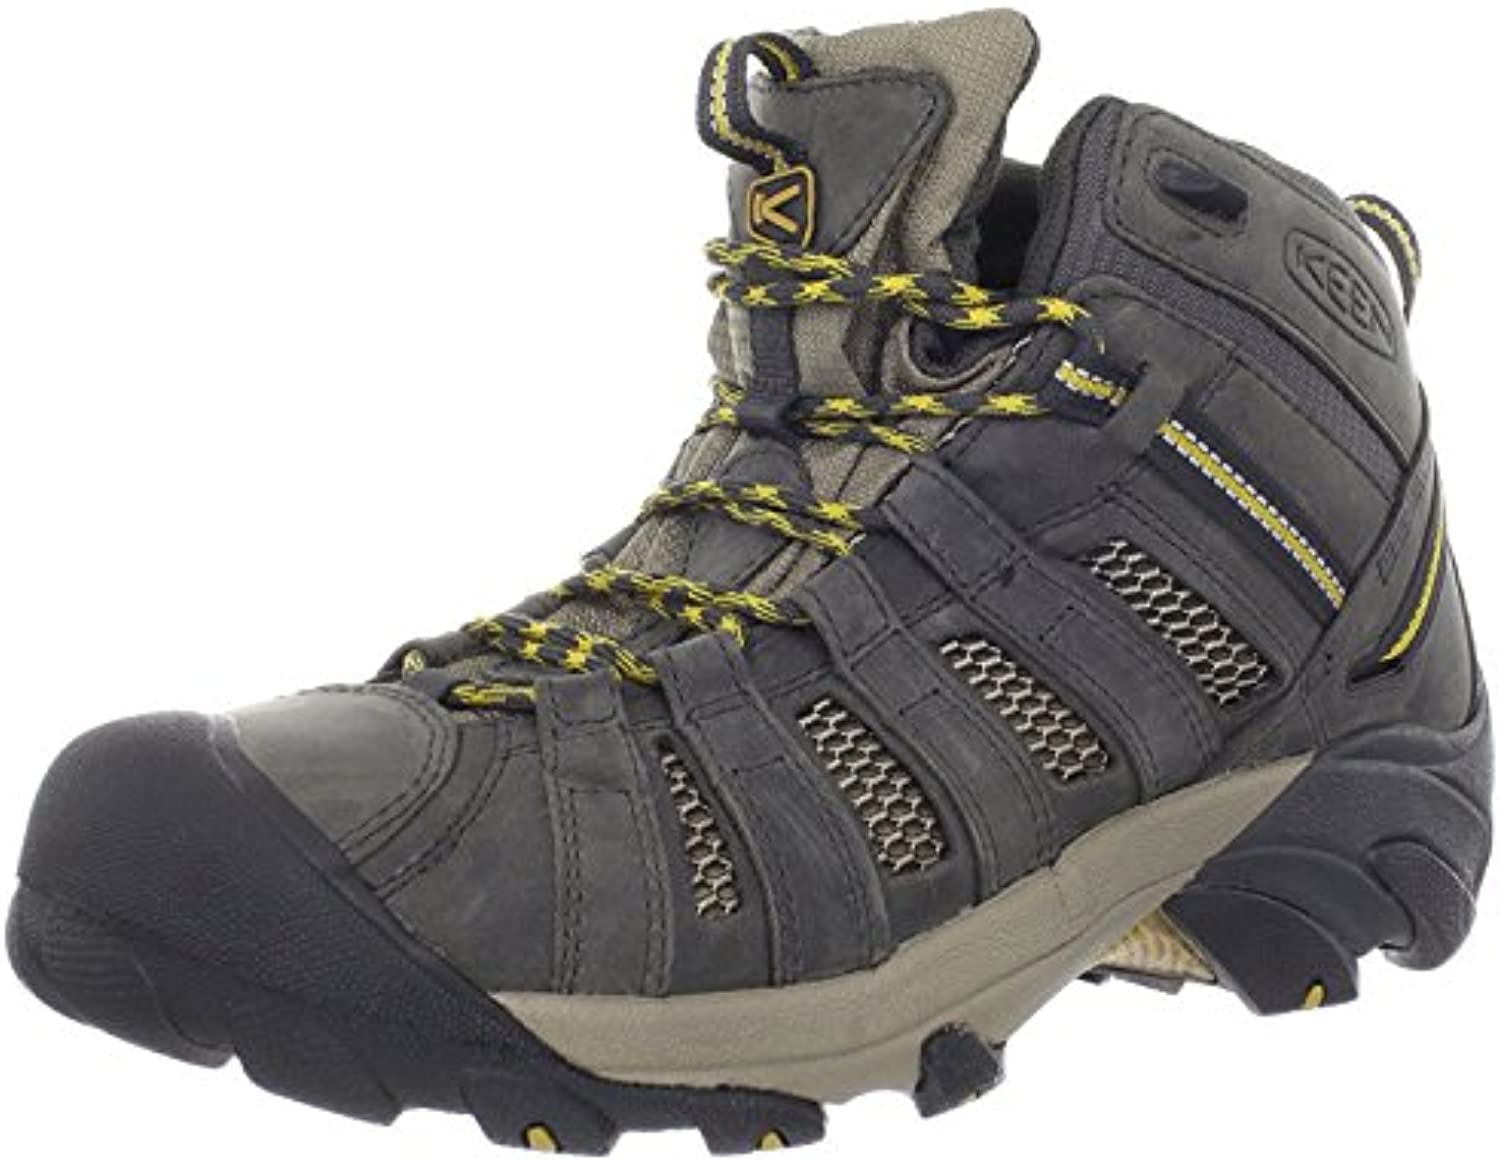 Keen Men'S Voyageur Mid Hiking Boot, Raven/Tawny Olive, 45 D(M) EU/10.5 D(M) UK